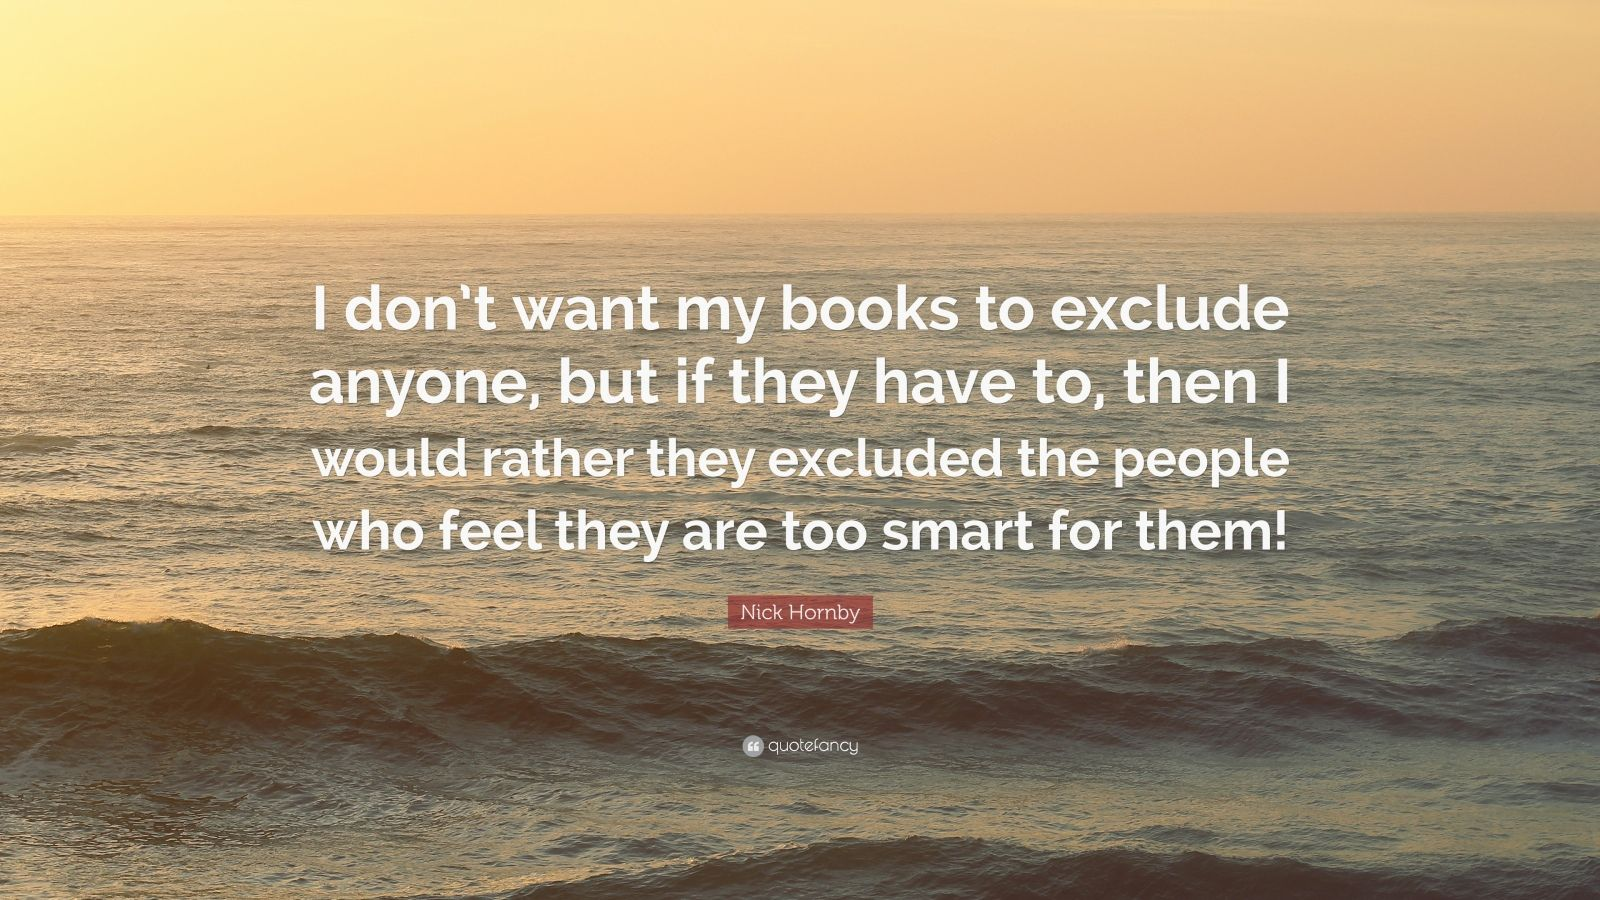 "Nick Hornby Quote: ""I don't want my books to exclude anyone, but if they have to, then I would rather they excluded the people who feel they are too smart for them!"""